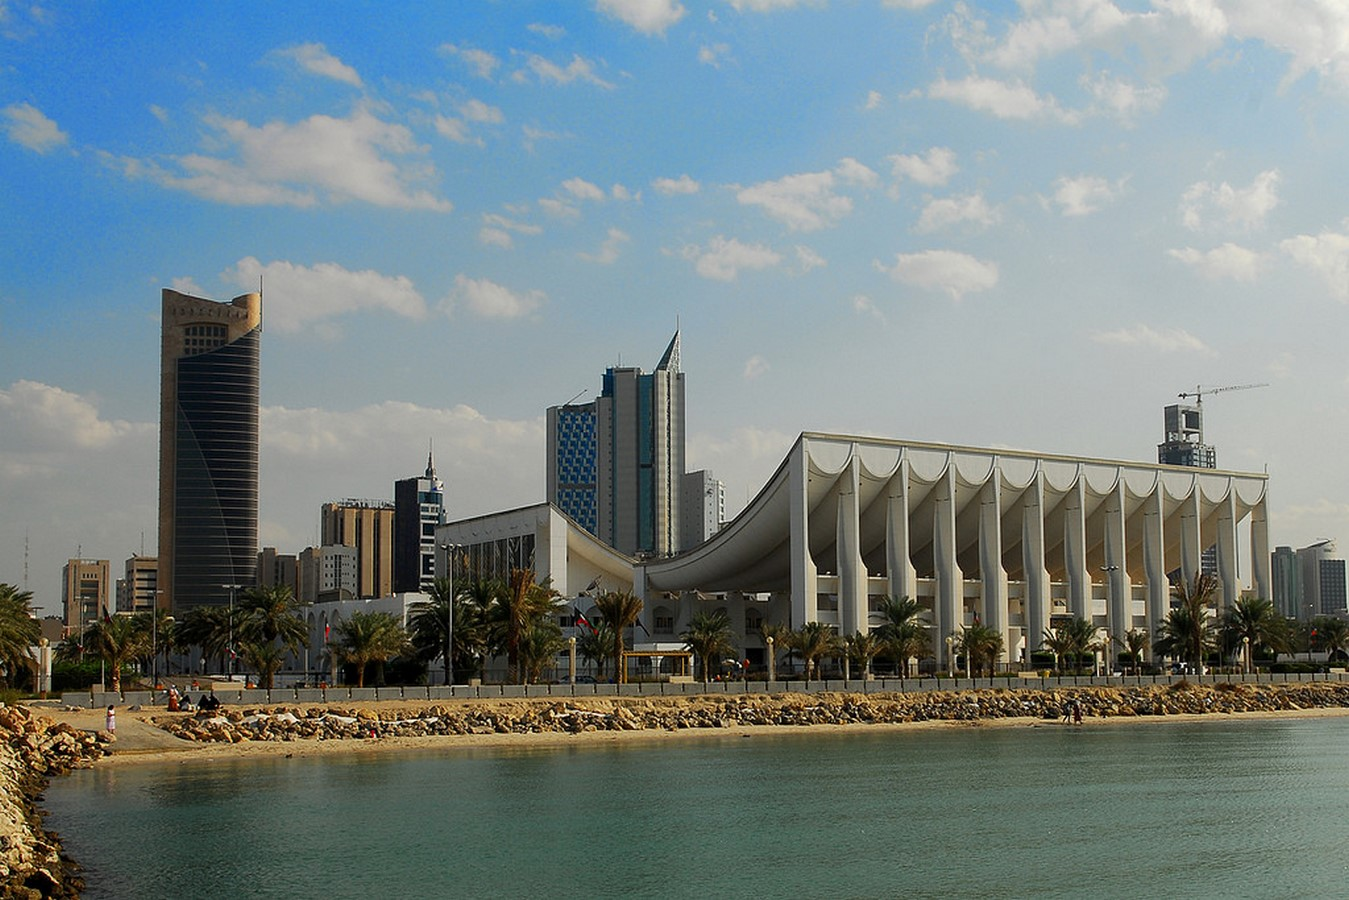 Kuwait National Assembly Building by Jørn Utzon: Architecture inspired from Bazaars - Sheet3